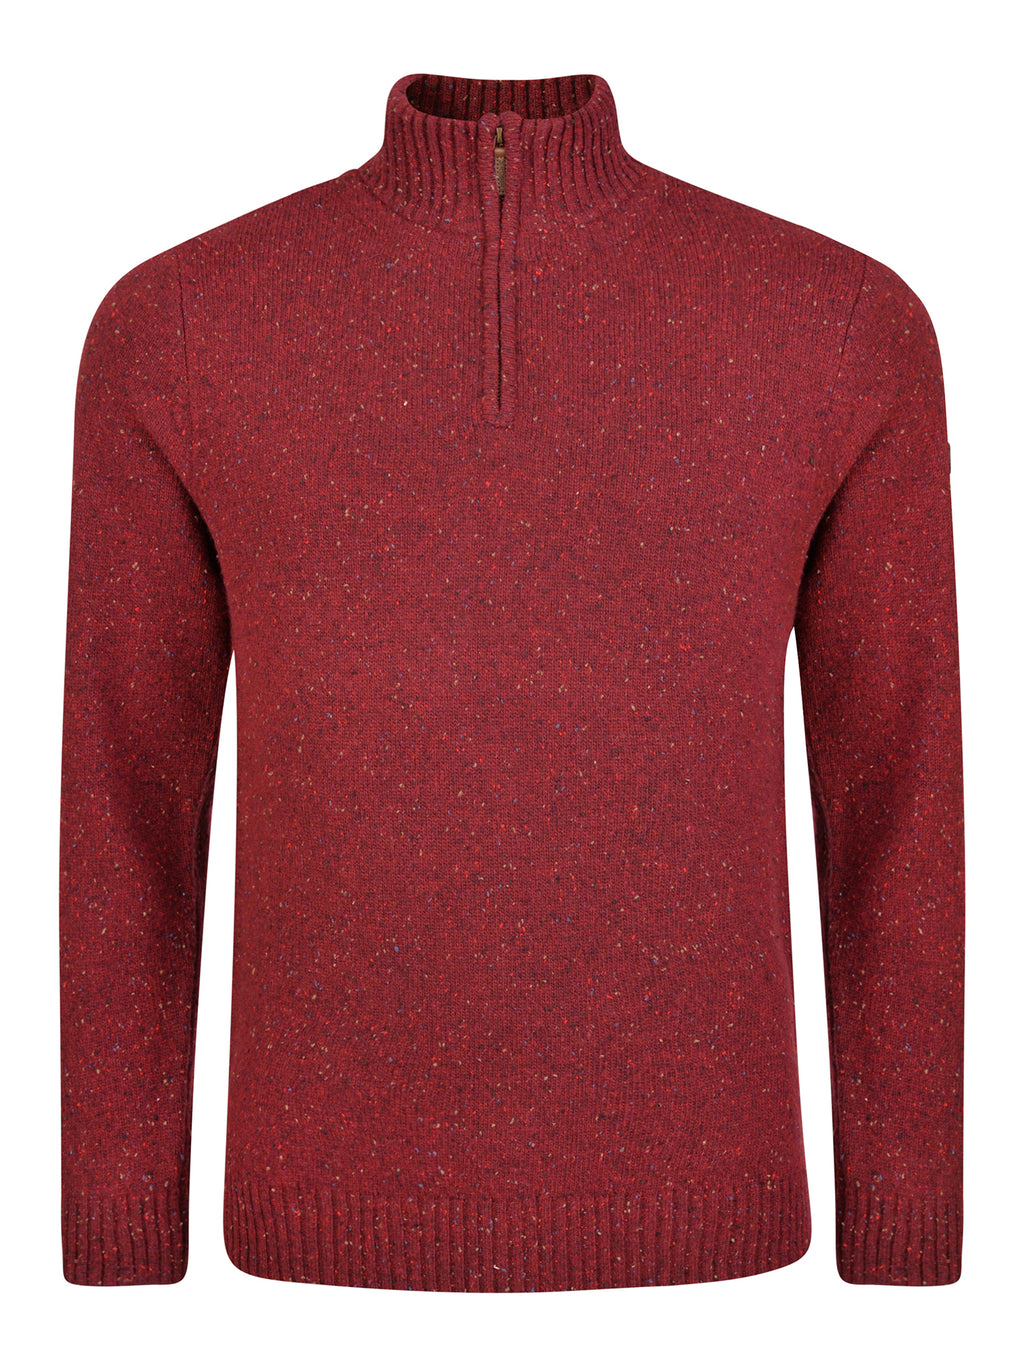 red lambswool jumper